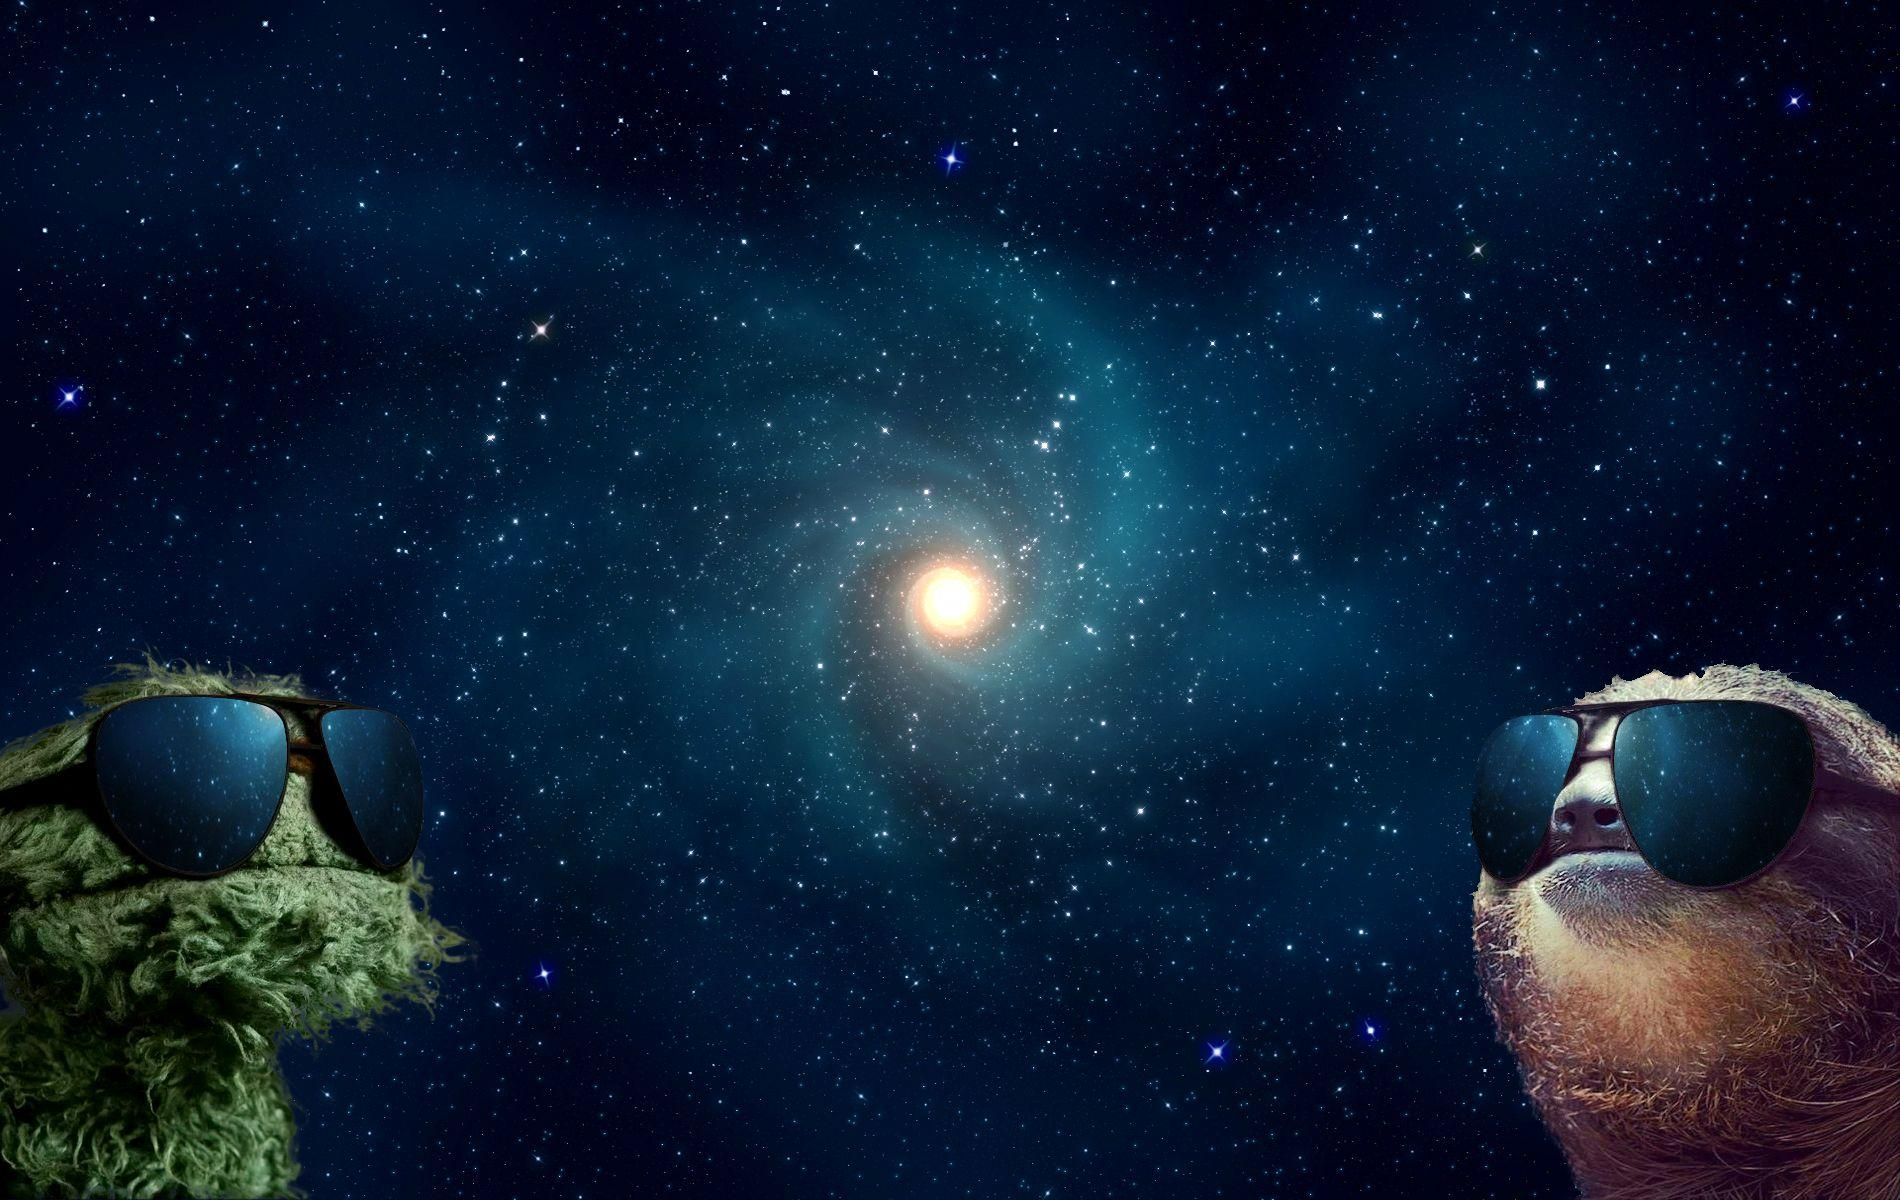 Sloth and Grover in Space HD Wallpapers